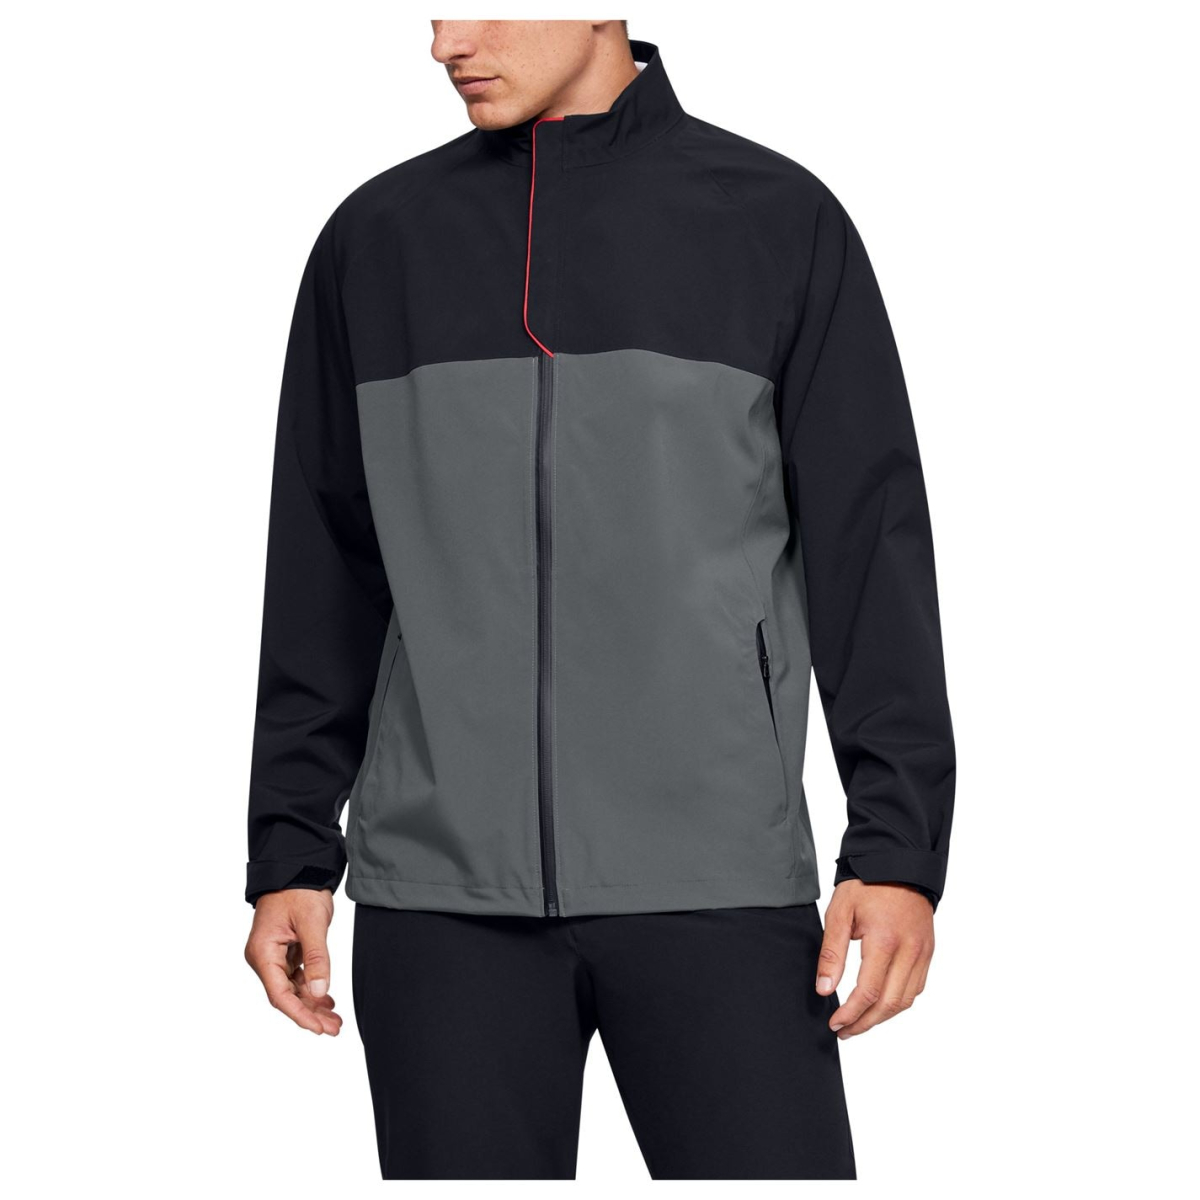 Under Armour Jacke Herren Herrenjacke Windjacke 5078 Schwarz